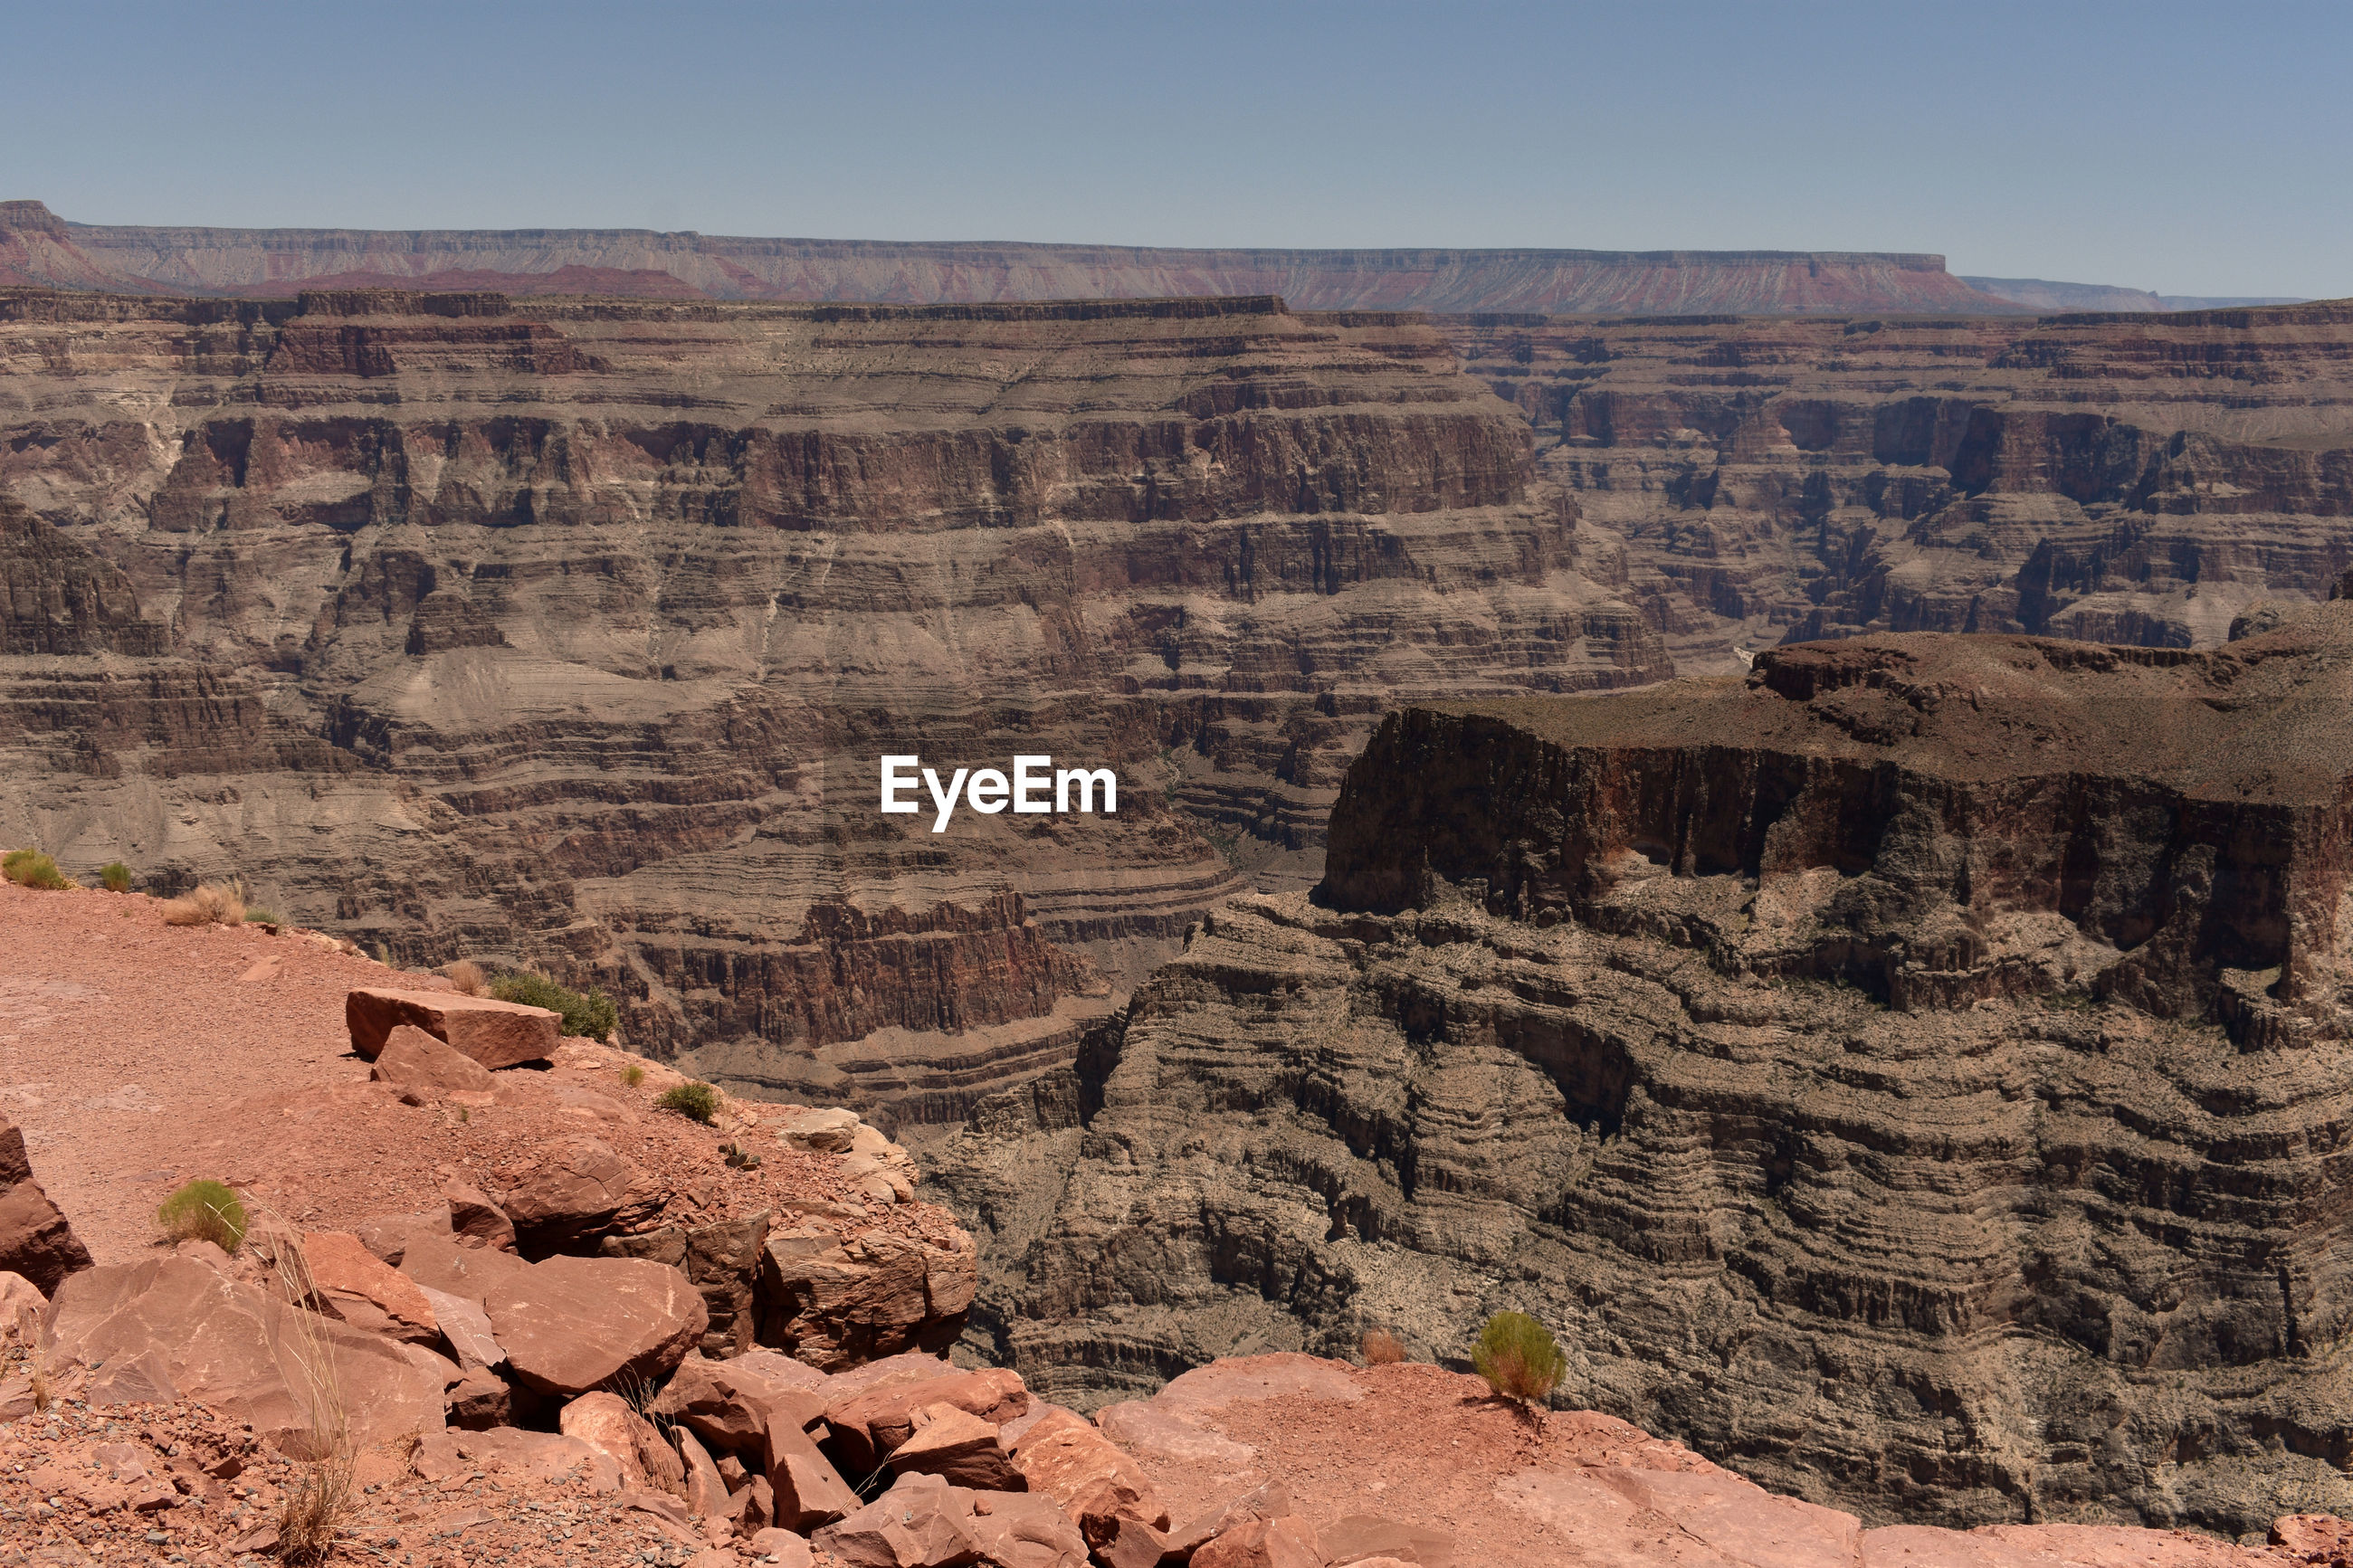 VIEW OF ROCK FORMATIONS IN A CANYON